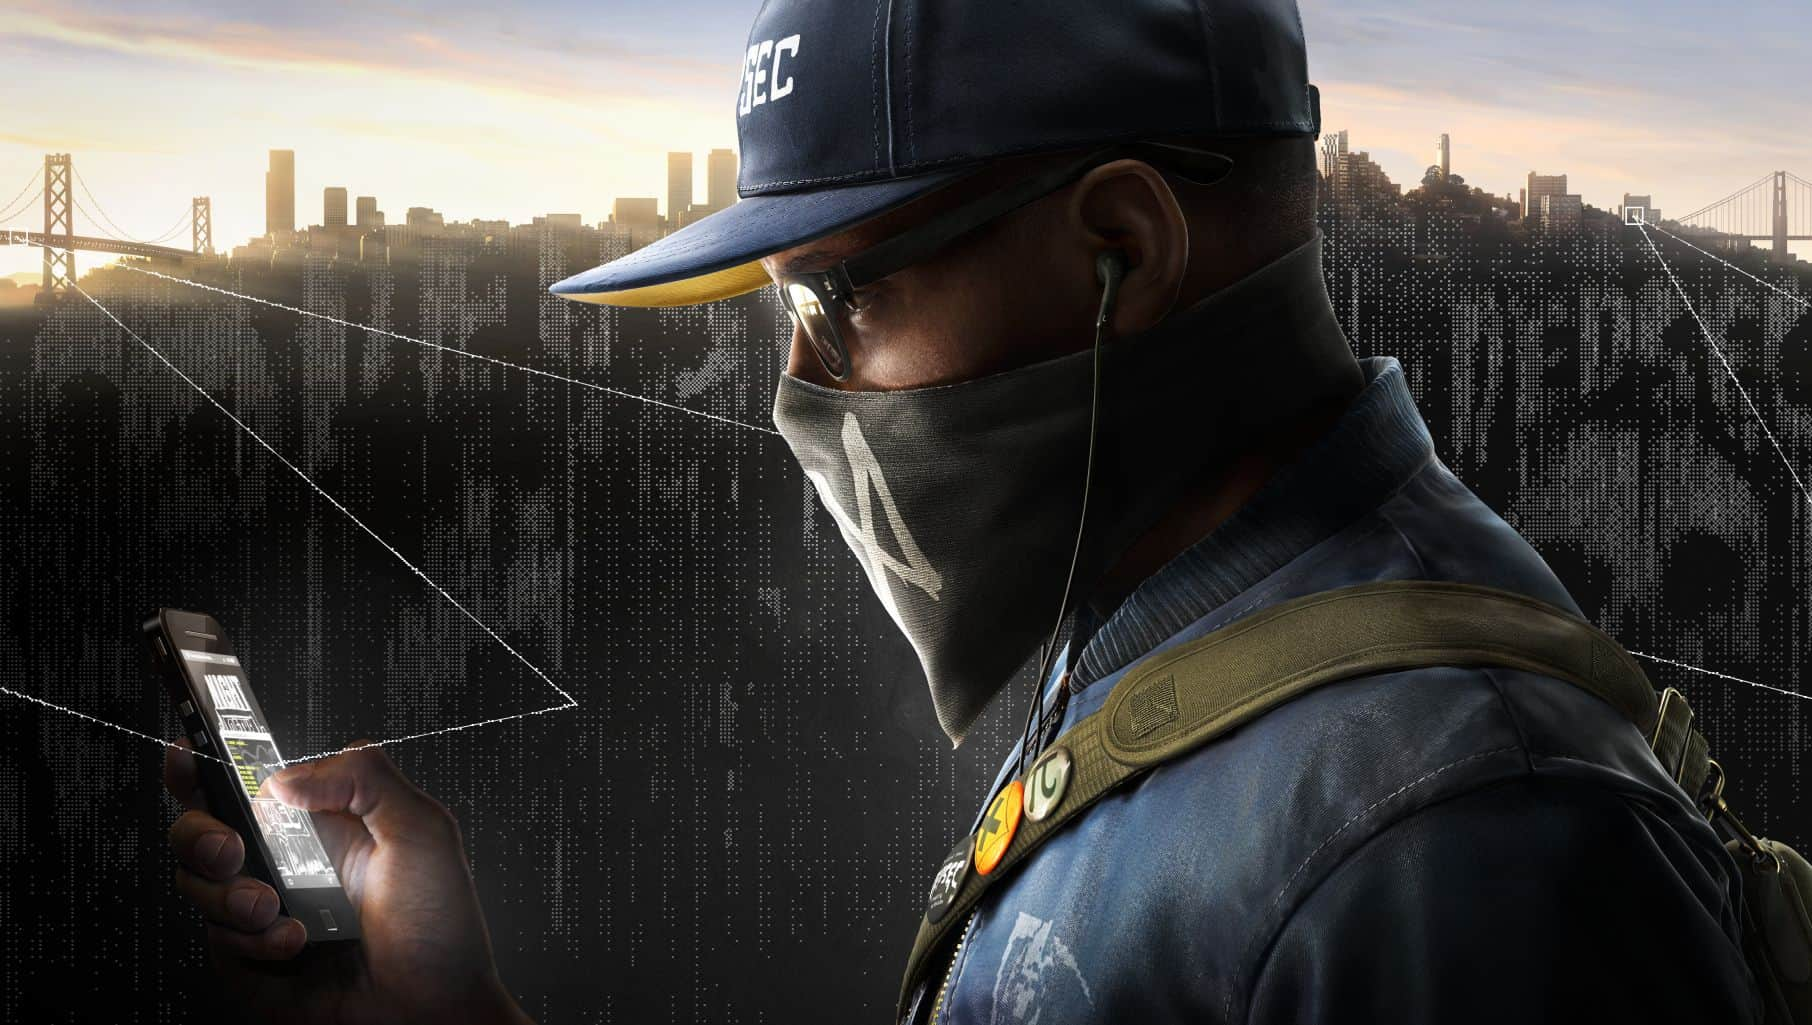 Watch Dogs is free at the Epic Games Store! Enjoy now to play!